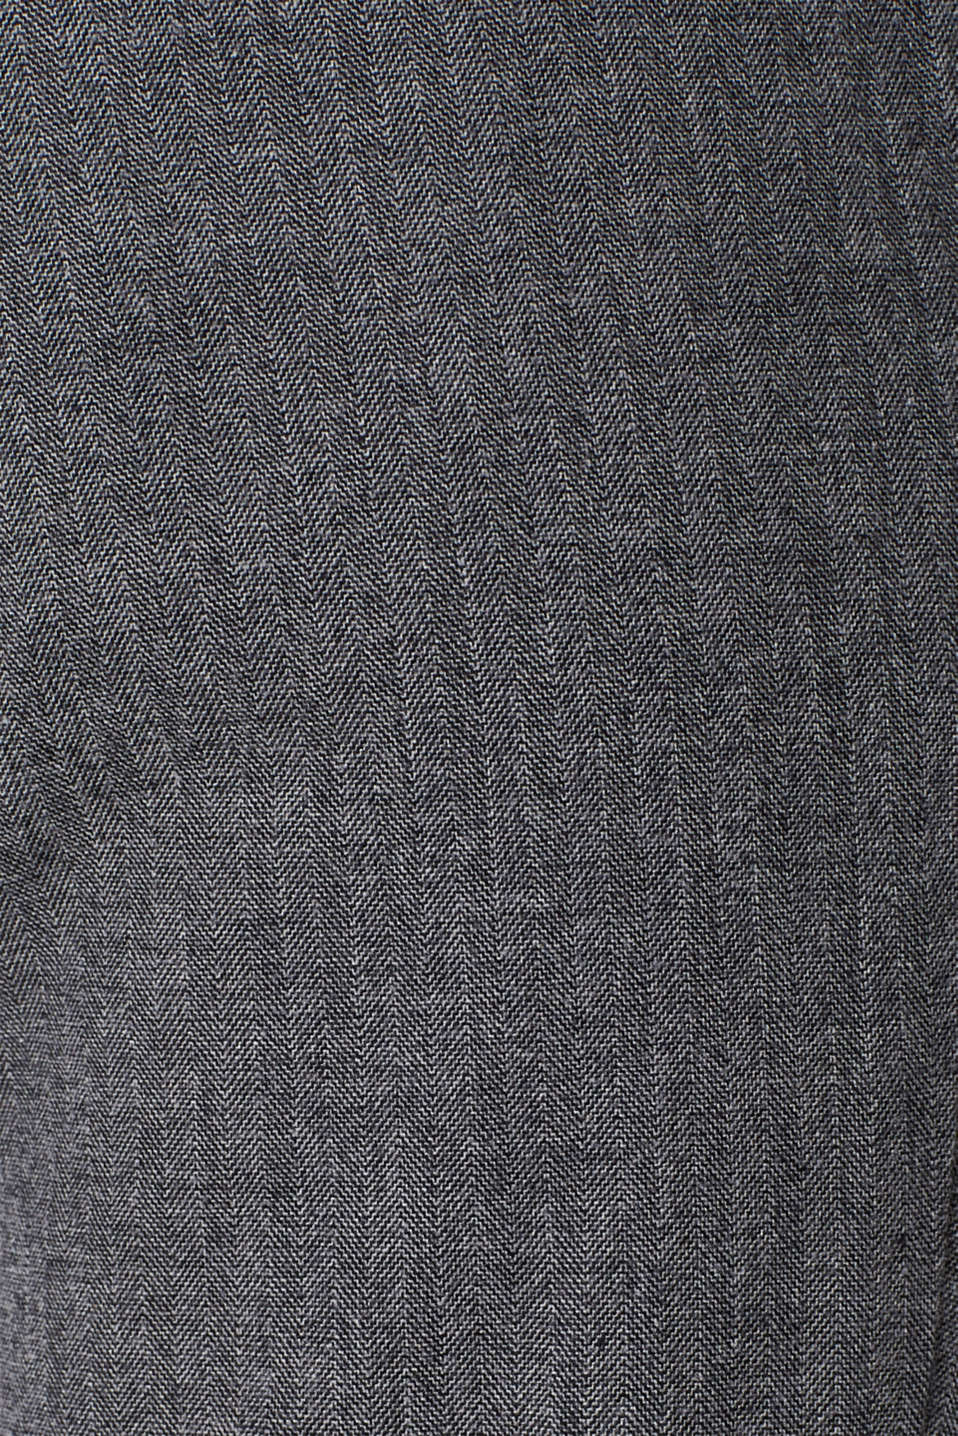 Stretch trousers with a herringbone texture, GREY, detail image number 4